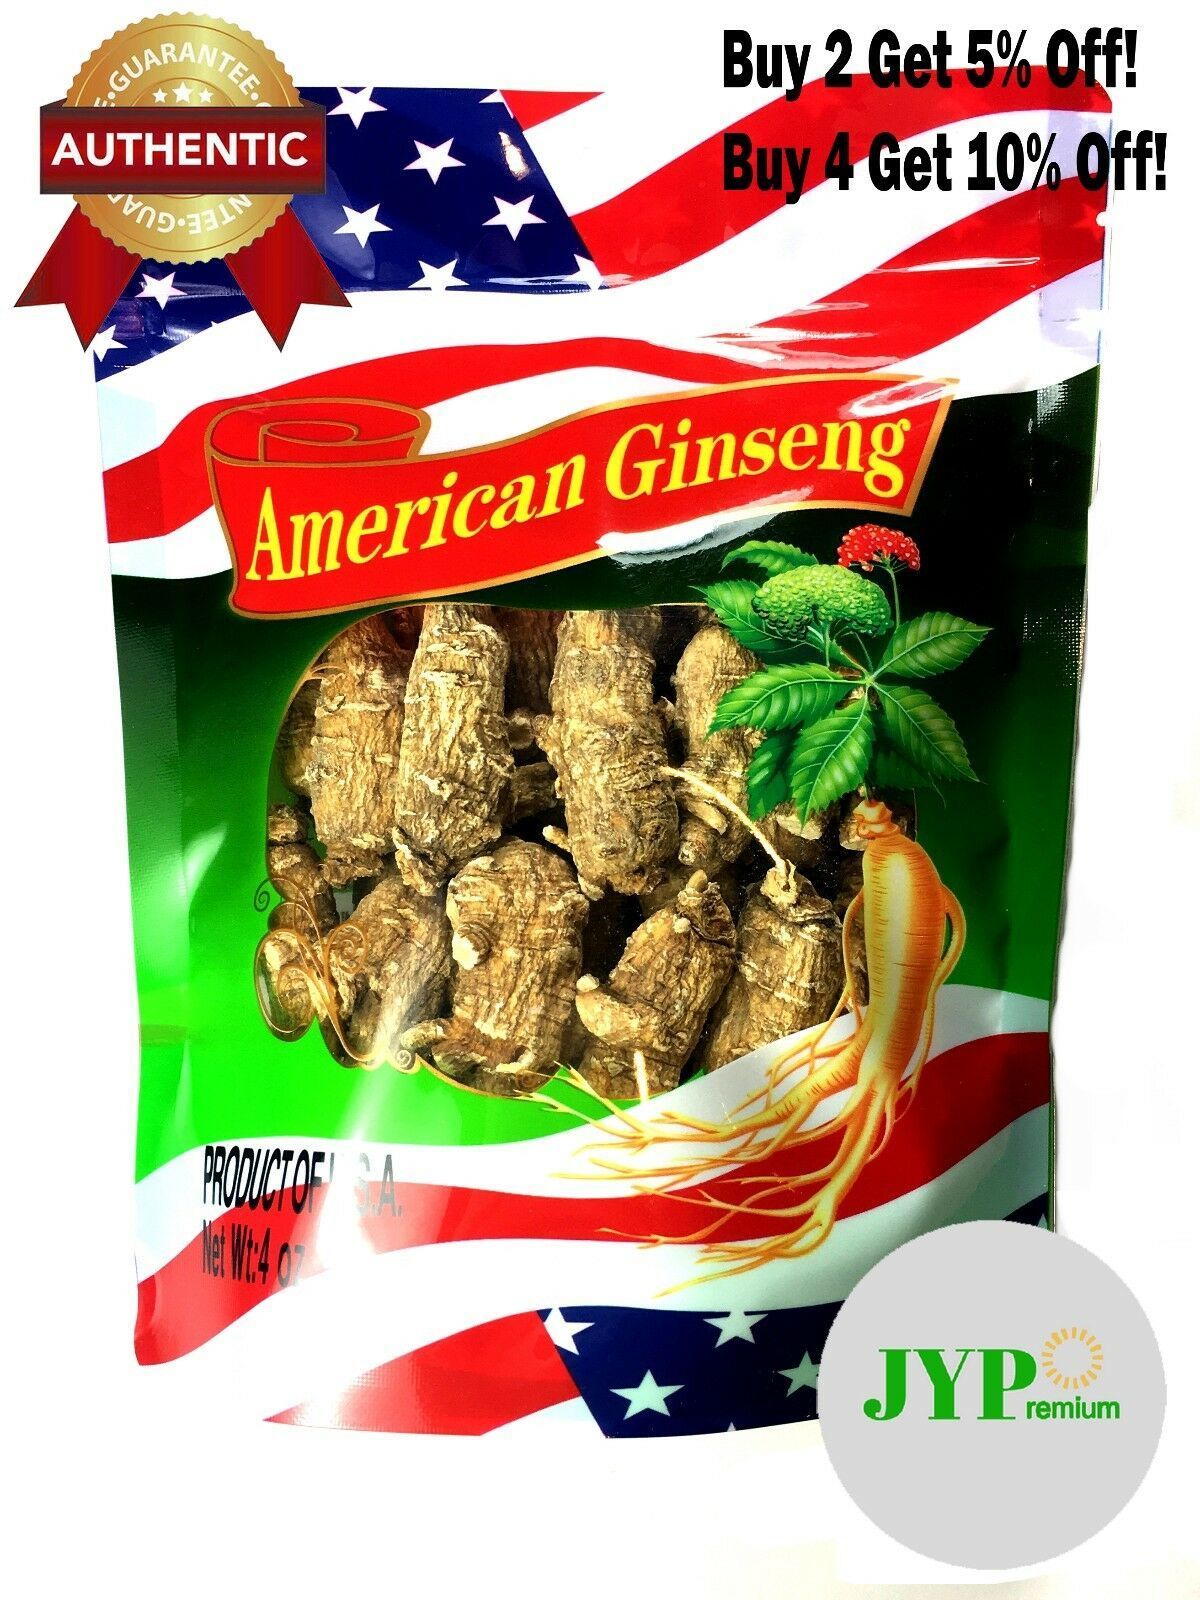 100% Extra Large American Ginseng Root, Main Root, Ultra Quality (4oz/8oz/16oz)